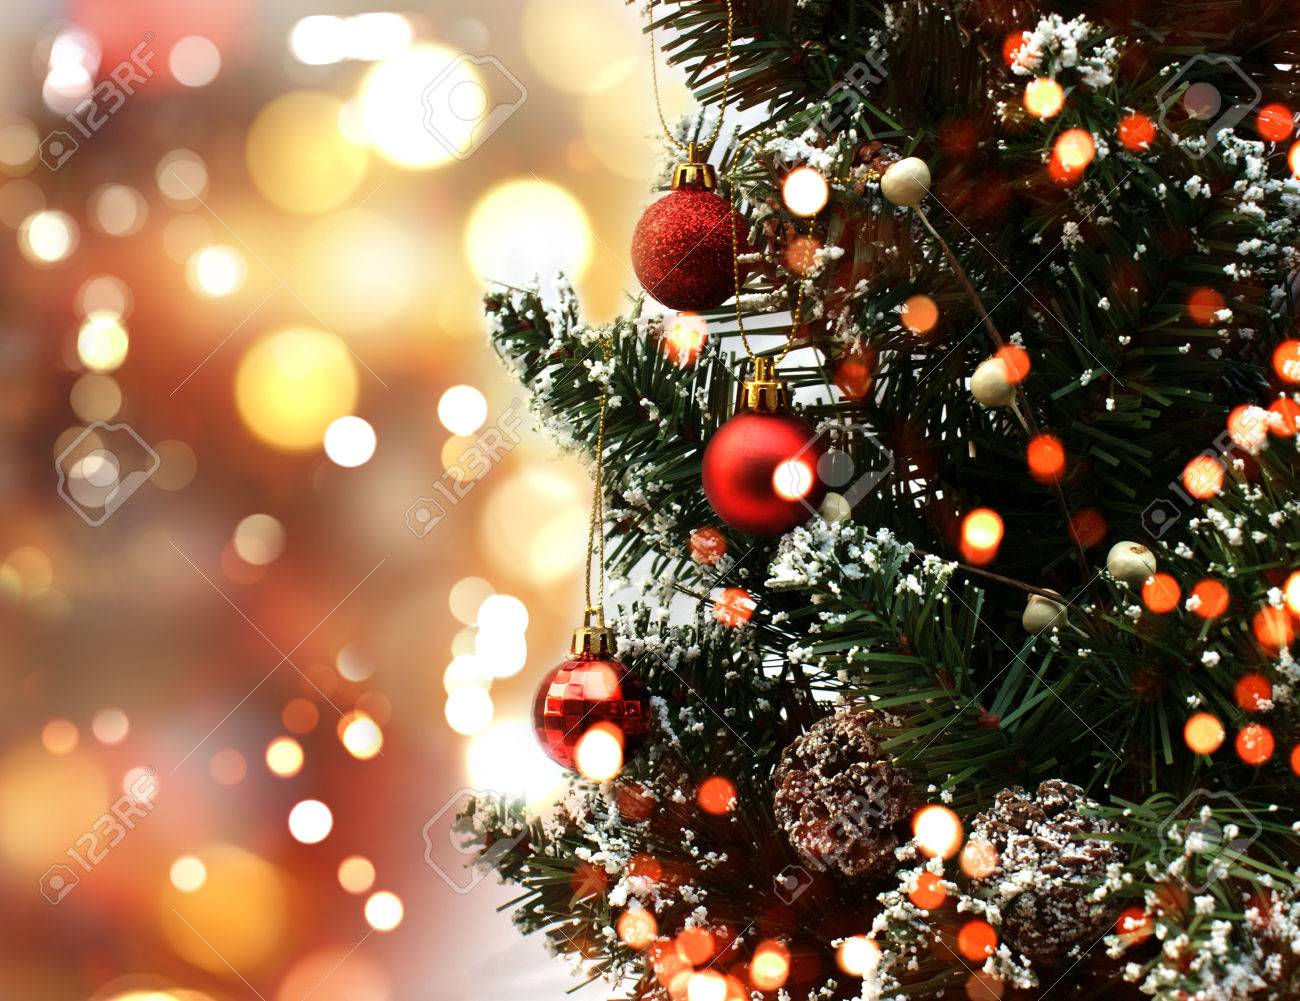 Christmas Tree With Decorations On A Bokeh Lights Background Stock ...